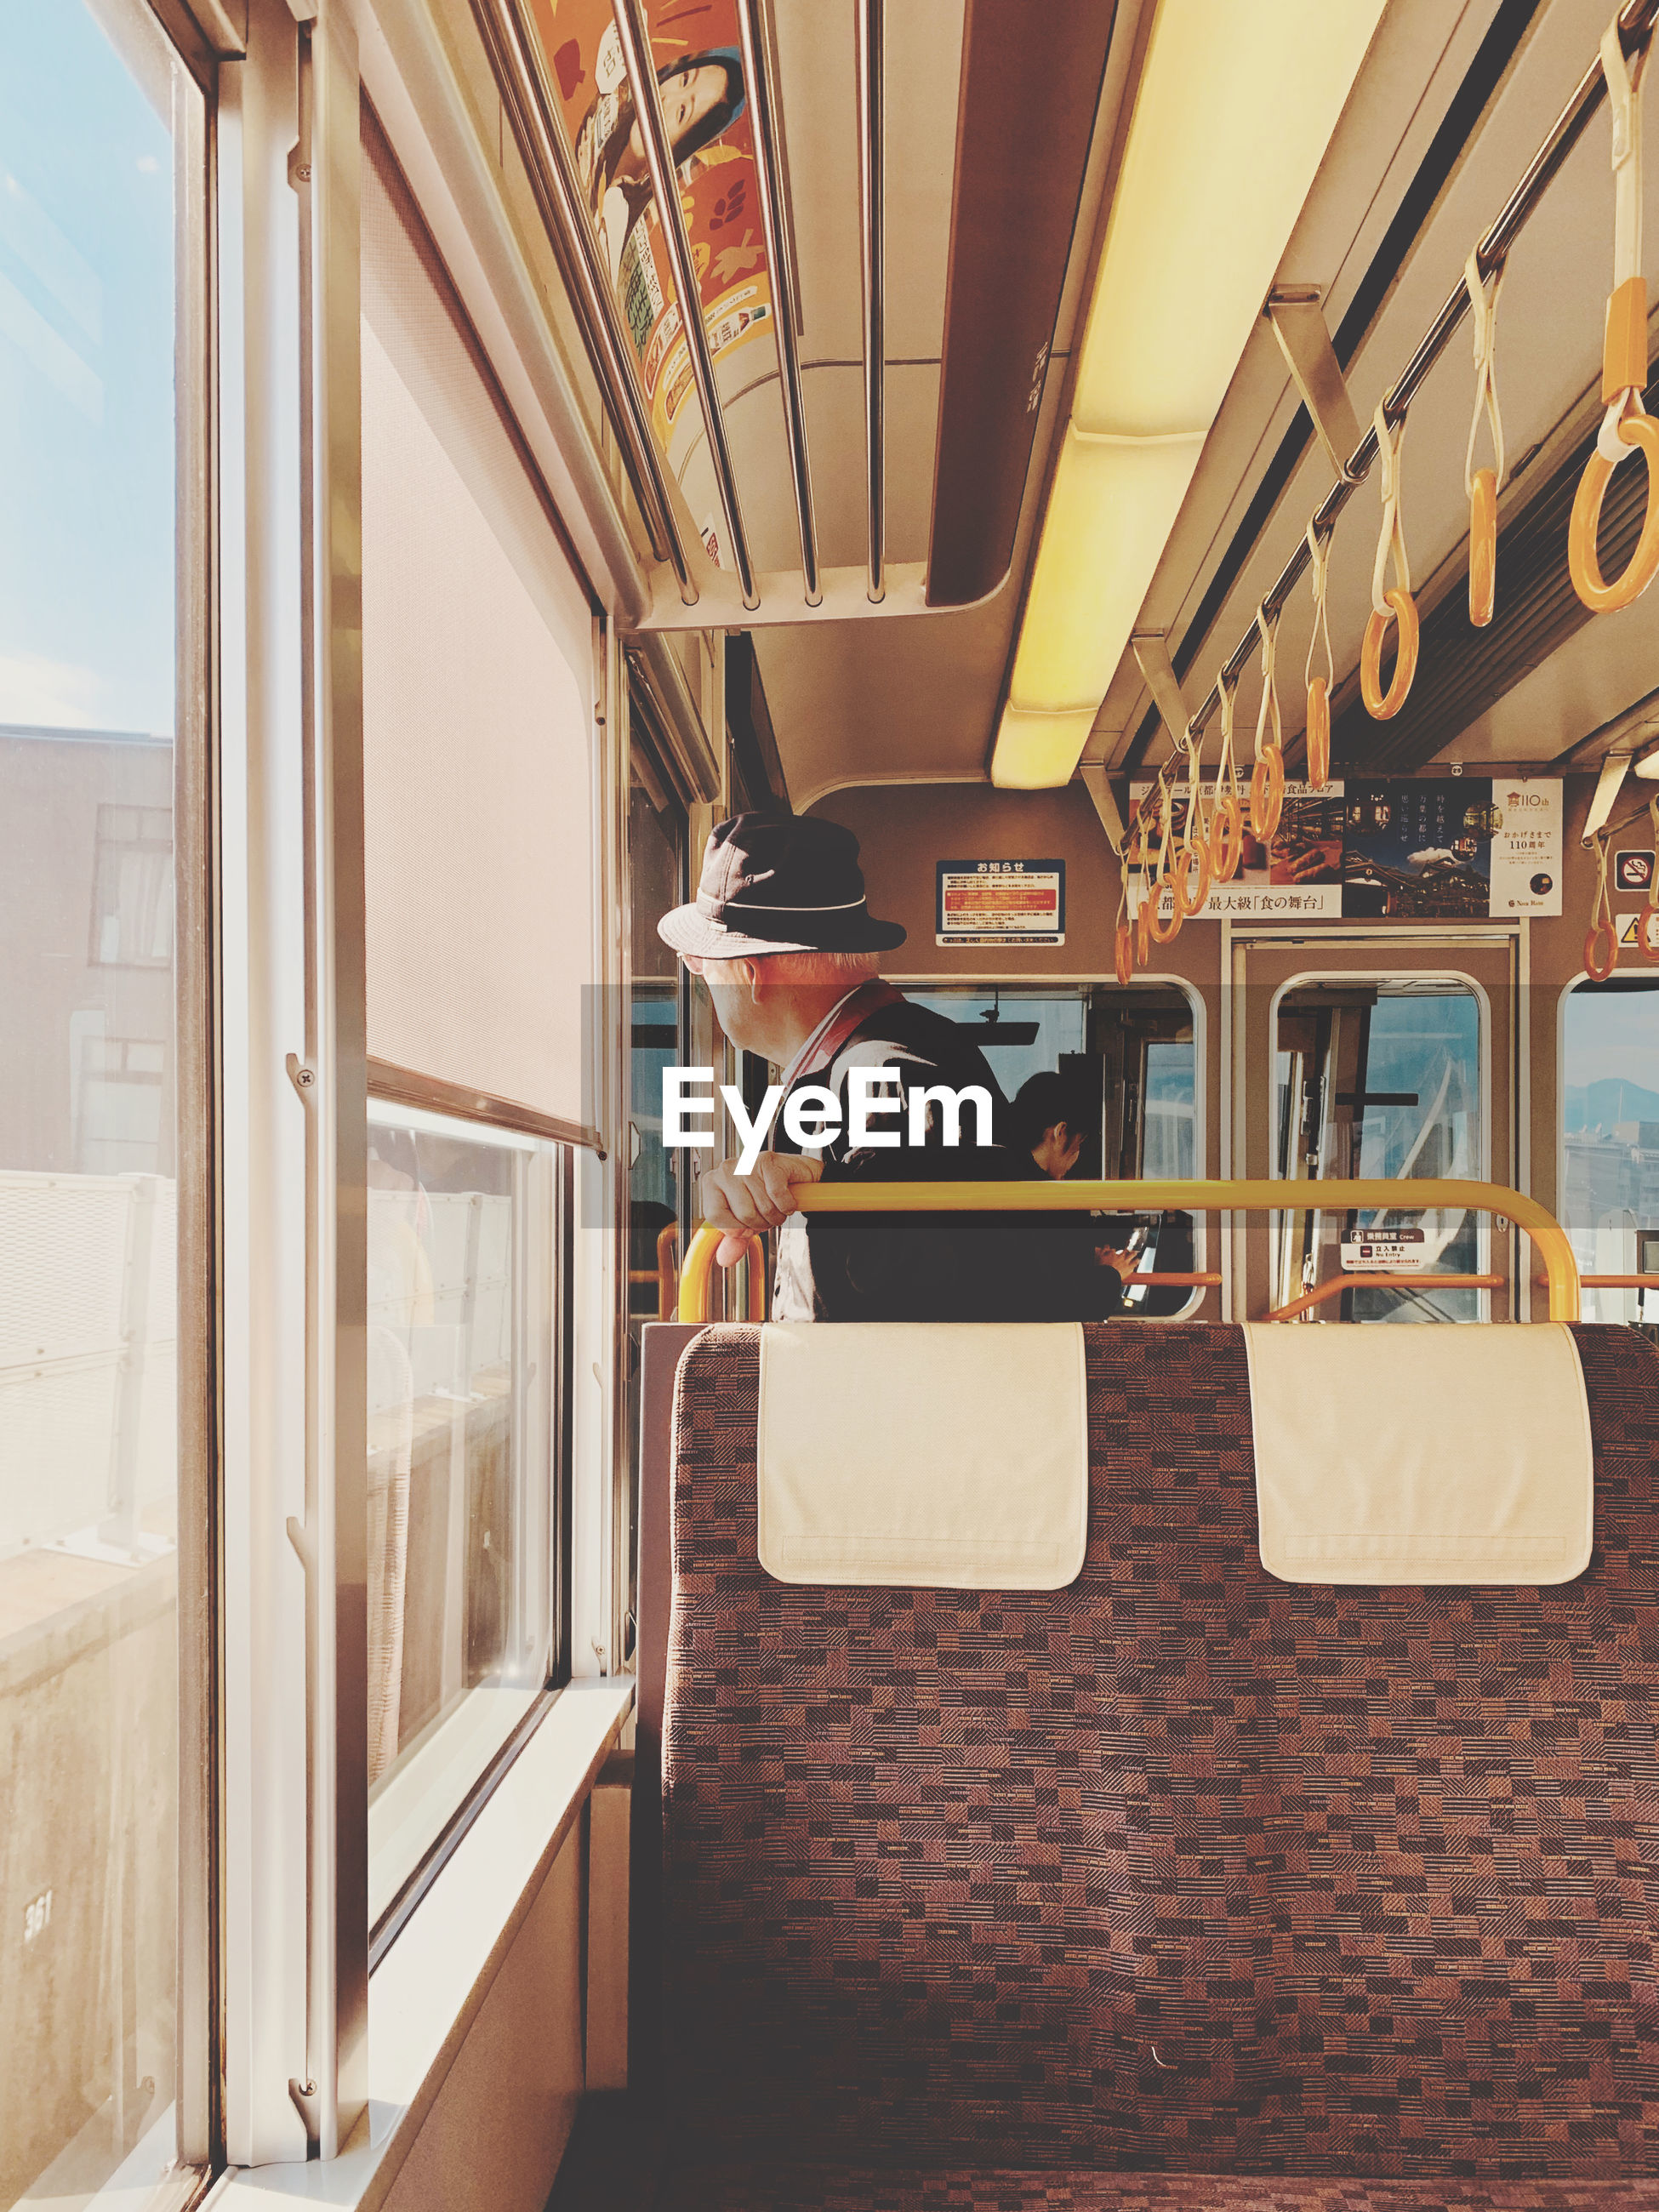 VIEW OF TRAIN IN BUS